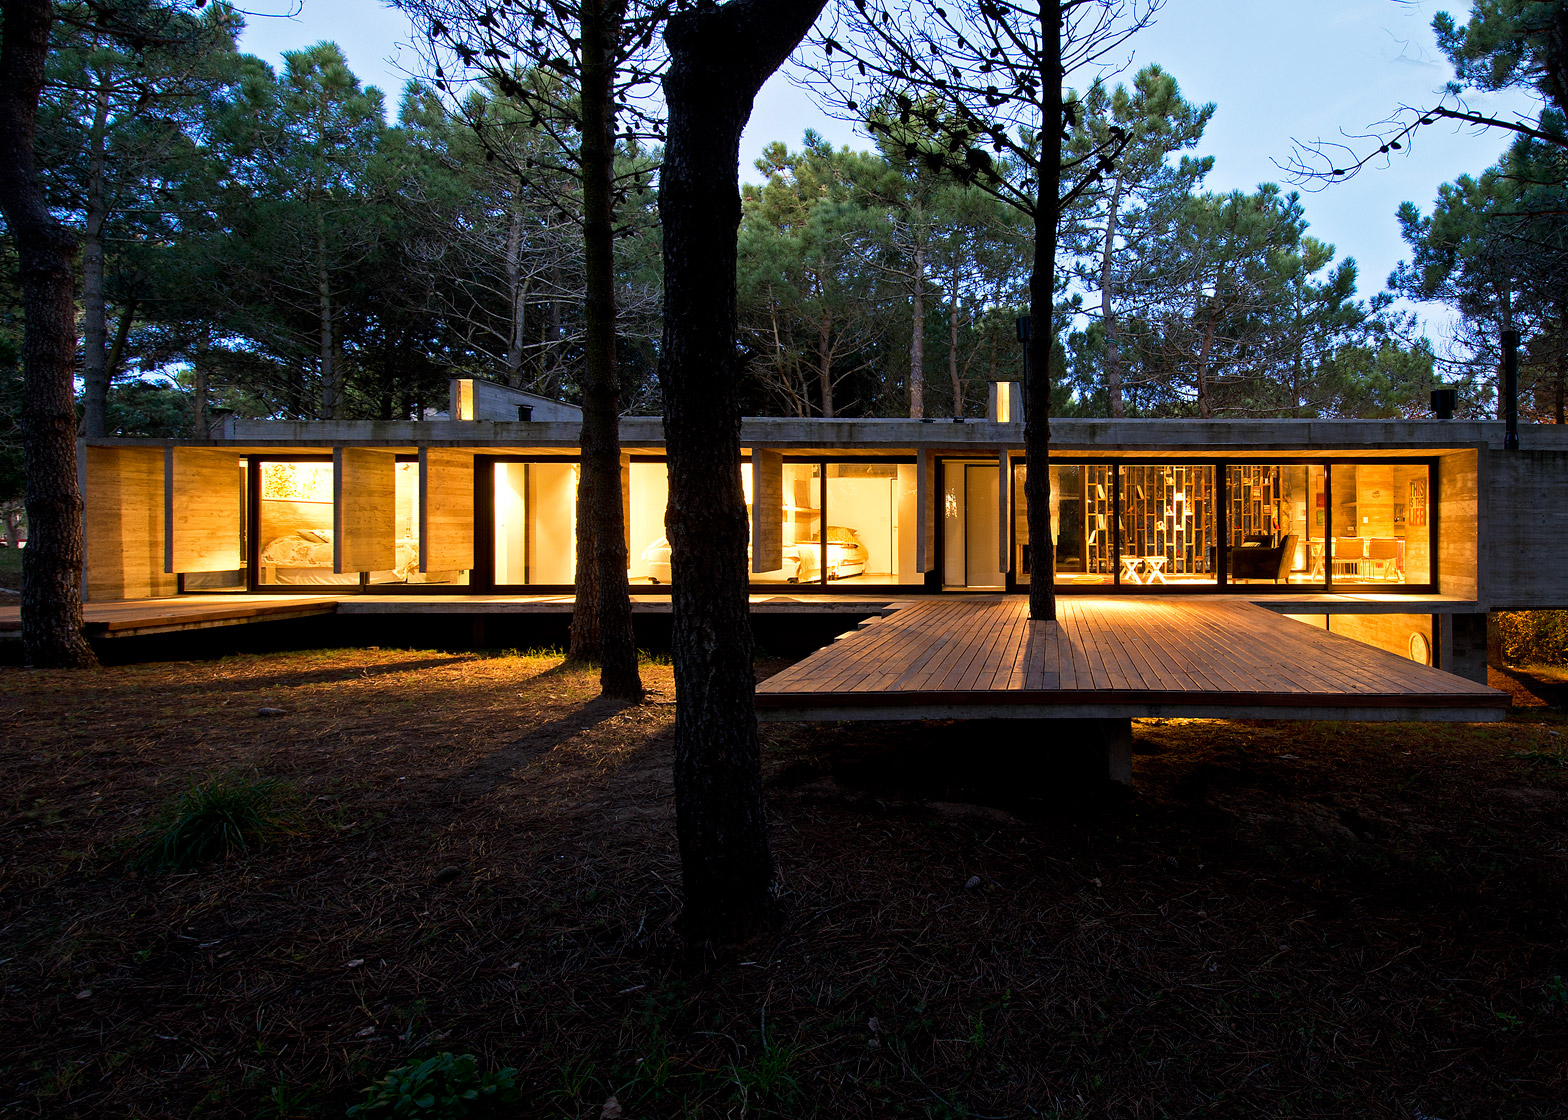 Concrete holiday home in forest glade sohomod blog for Holiday home designs victoria